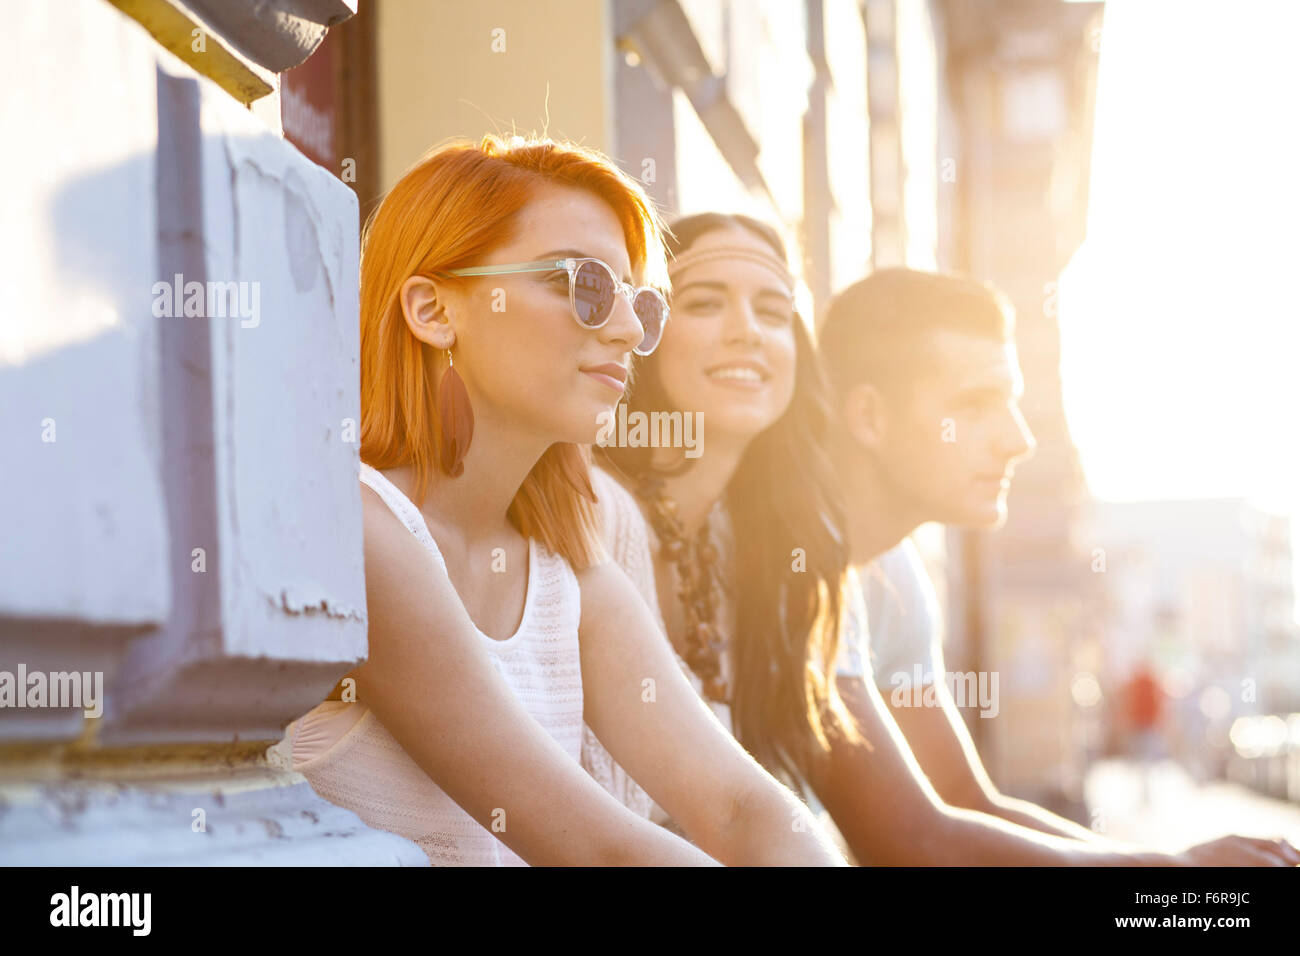 Cool young people in hippie style fashion - Stock Image